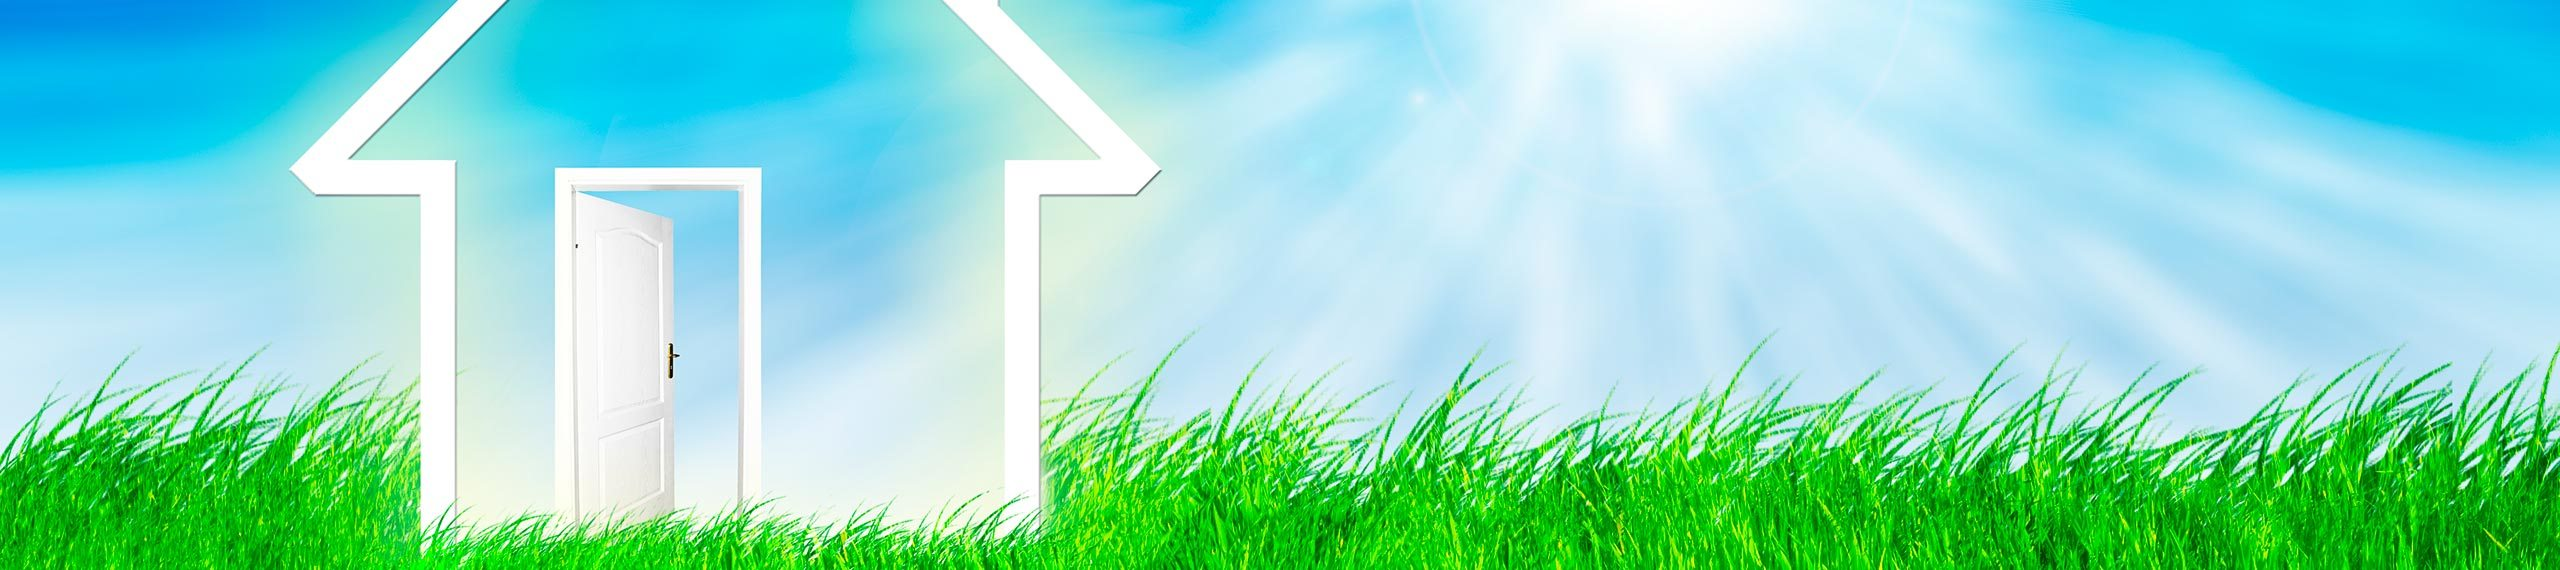 venda-su-inmueble